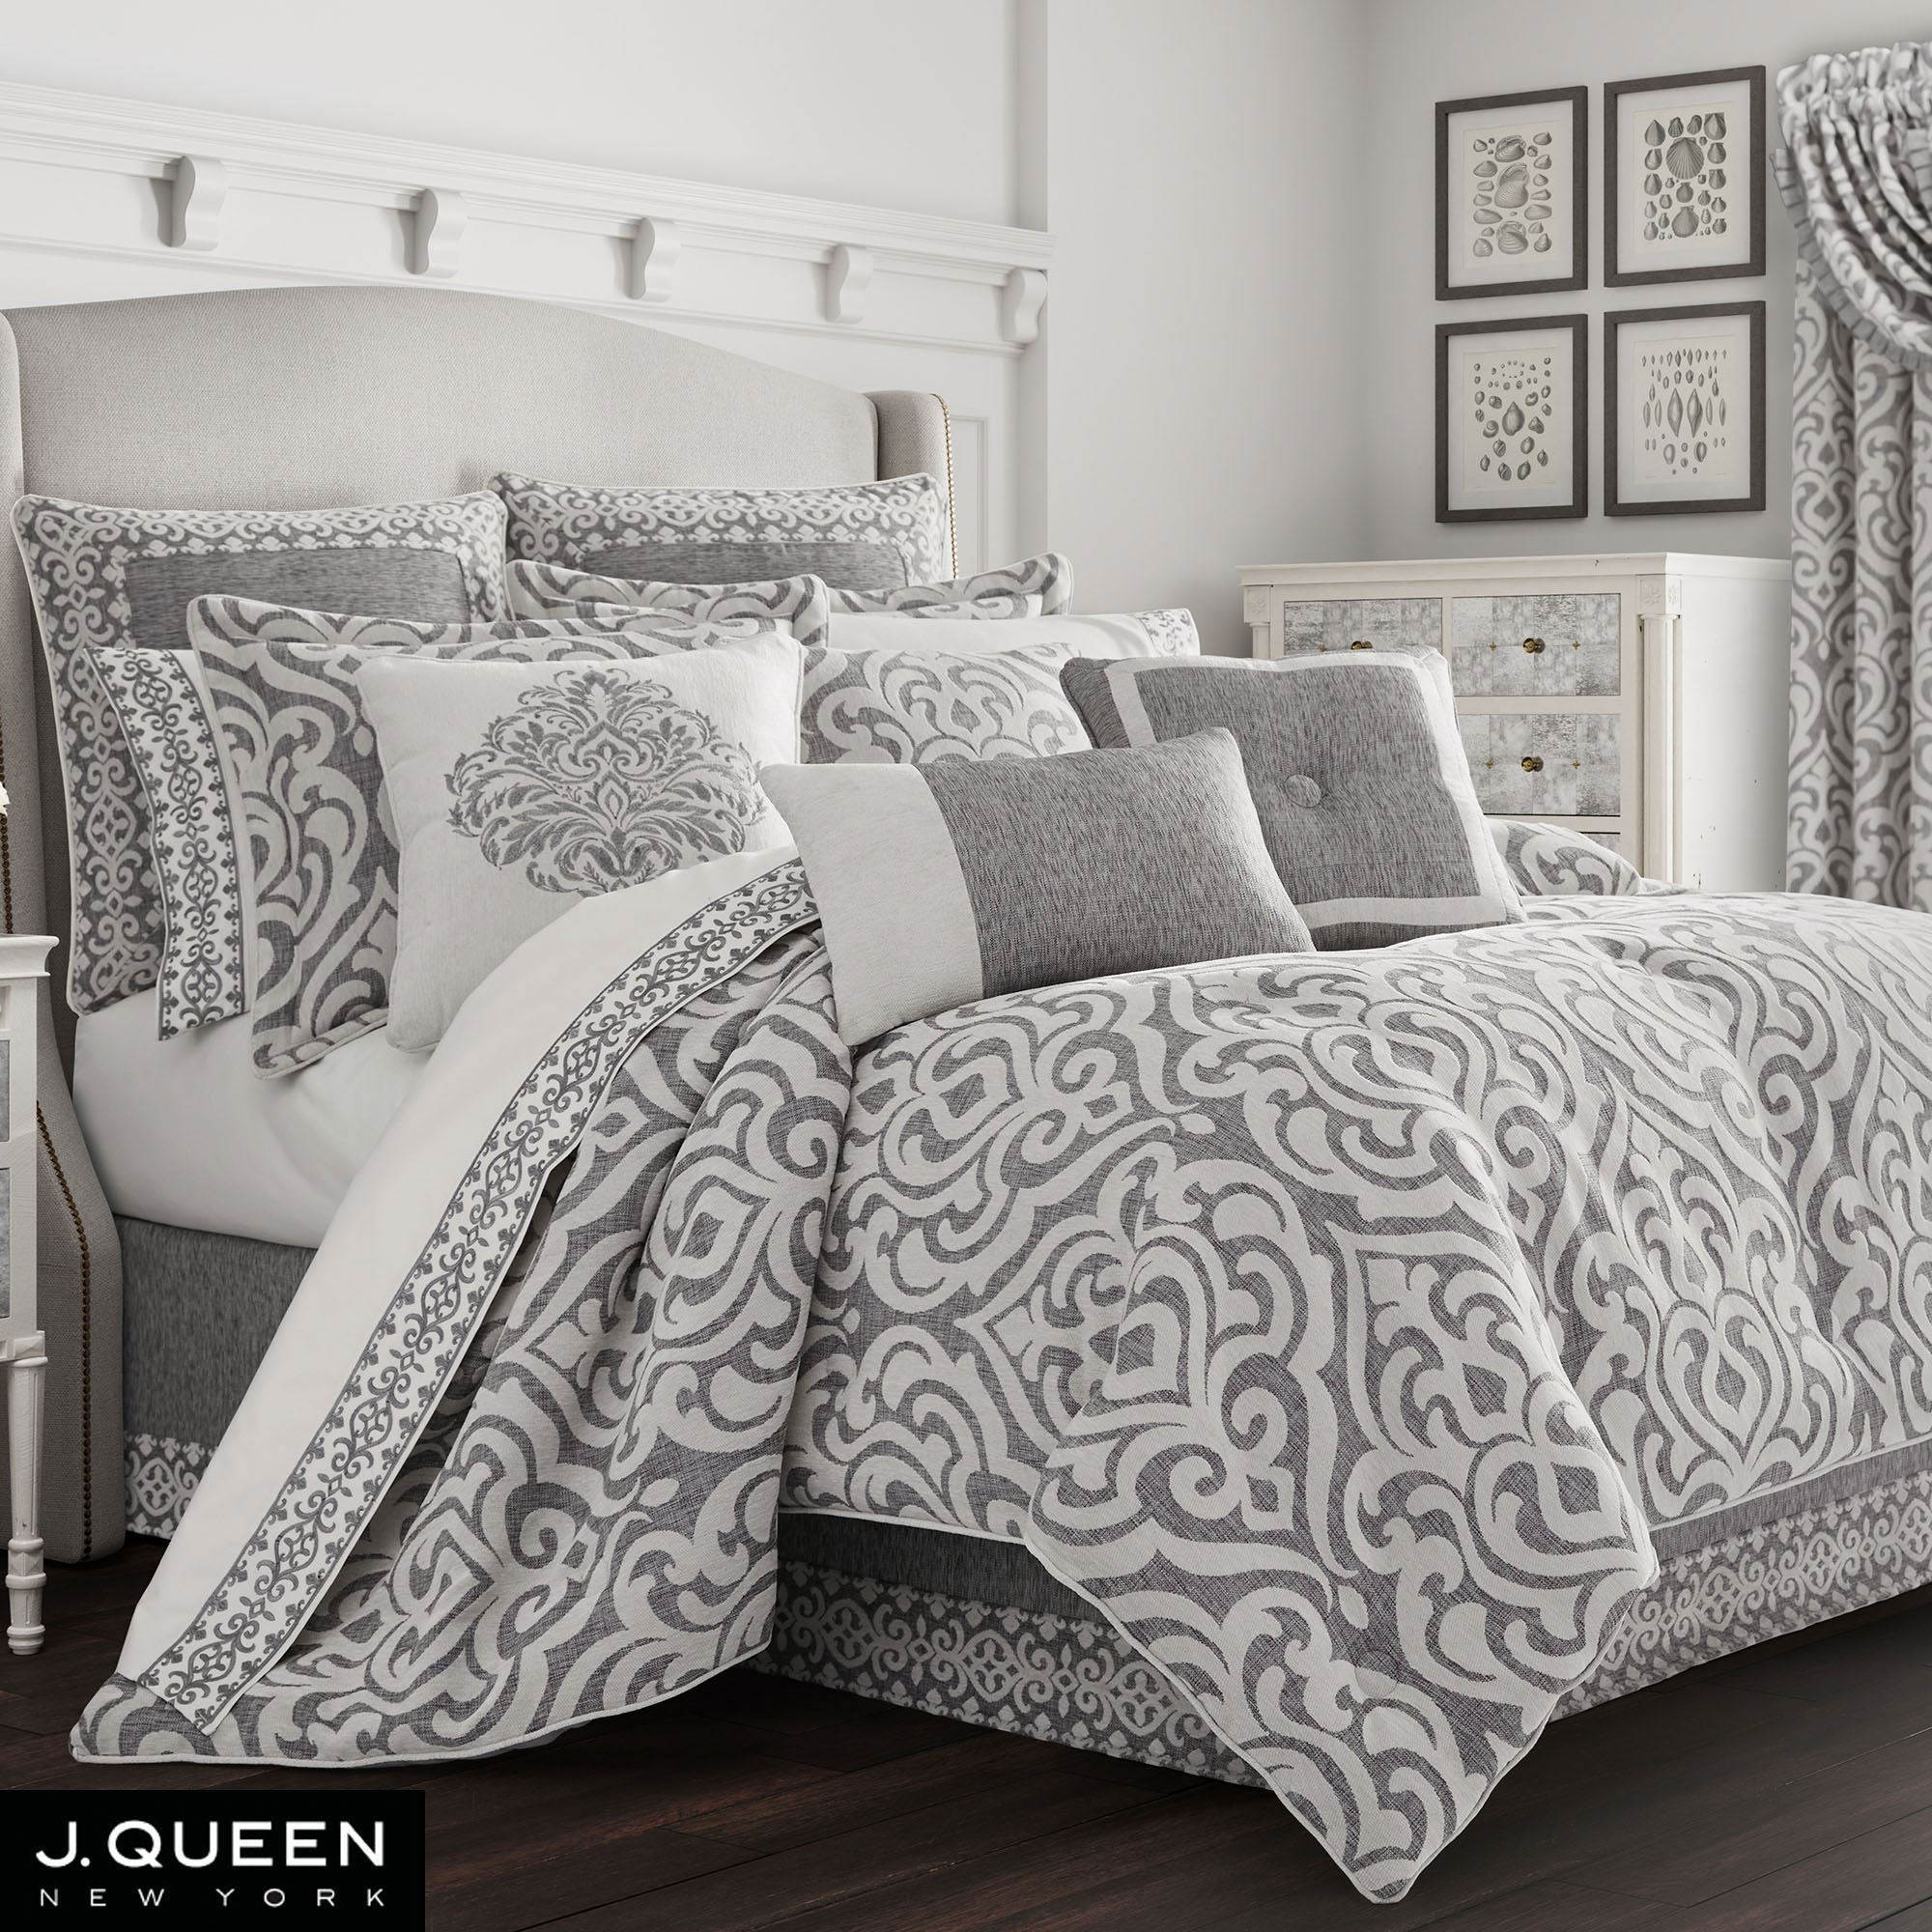 Damask Duvet Pierce Light Silver Gray And Dark Gray Damask Comforter Bedding By J Queen New York